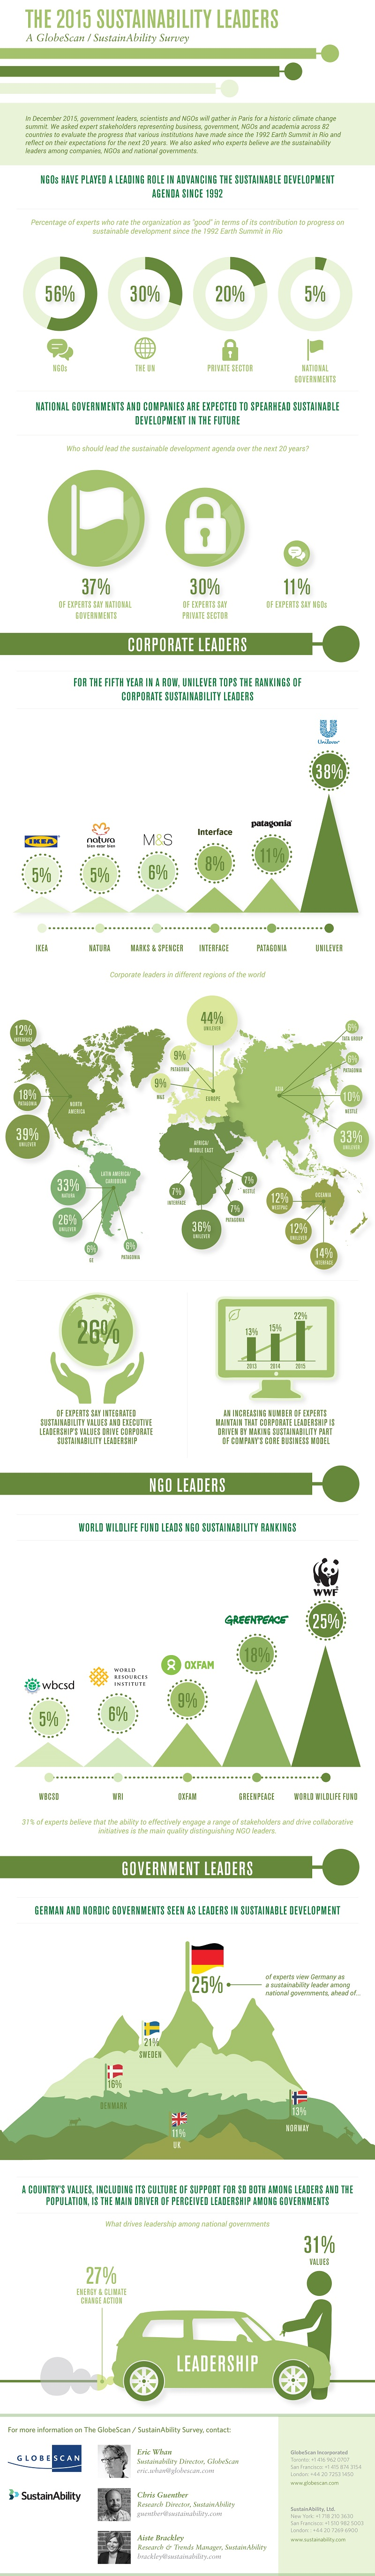 2015_SustainAbility-Leaders-Infographic